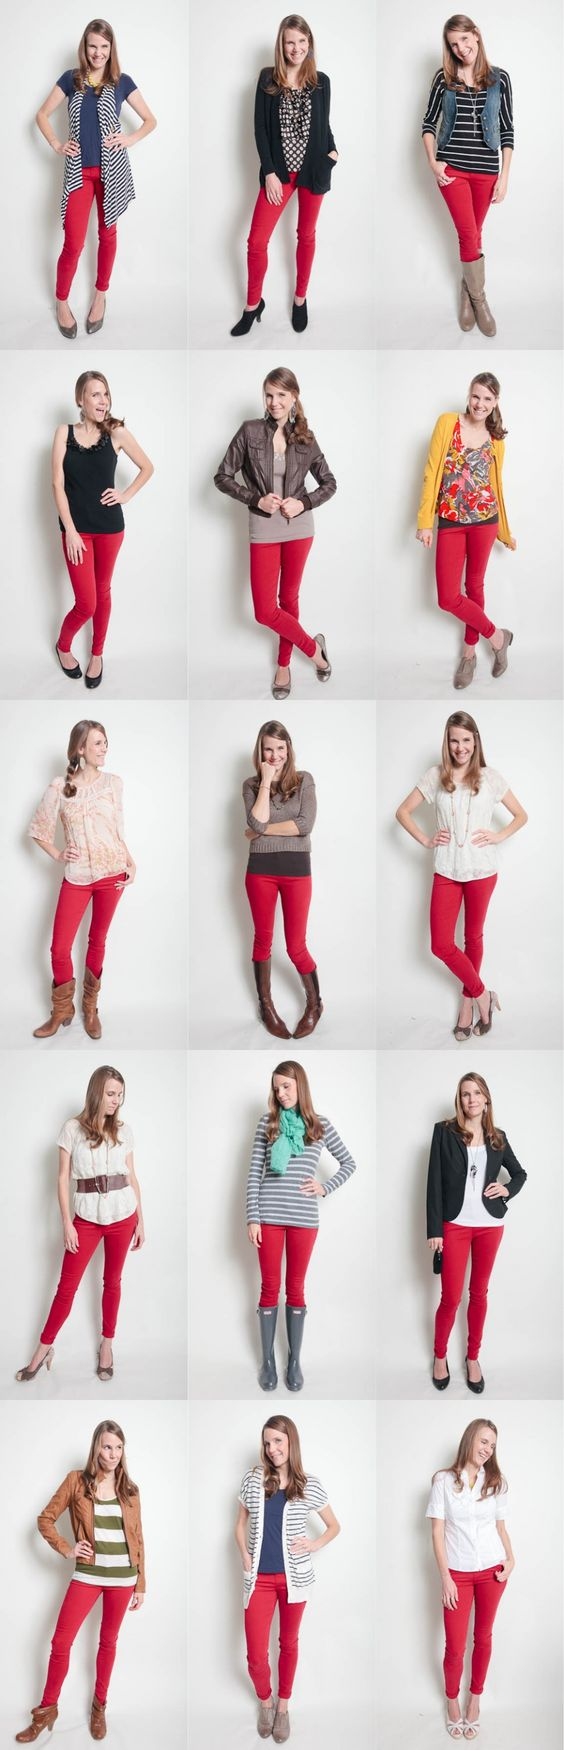 the red jeans project--inspiration to take my red jeans into more outfits than just christmas and dr. seuss day.